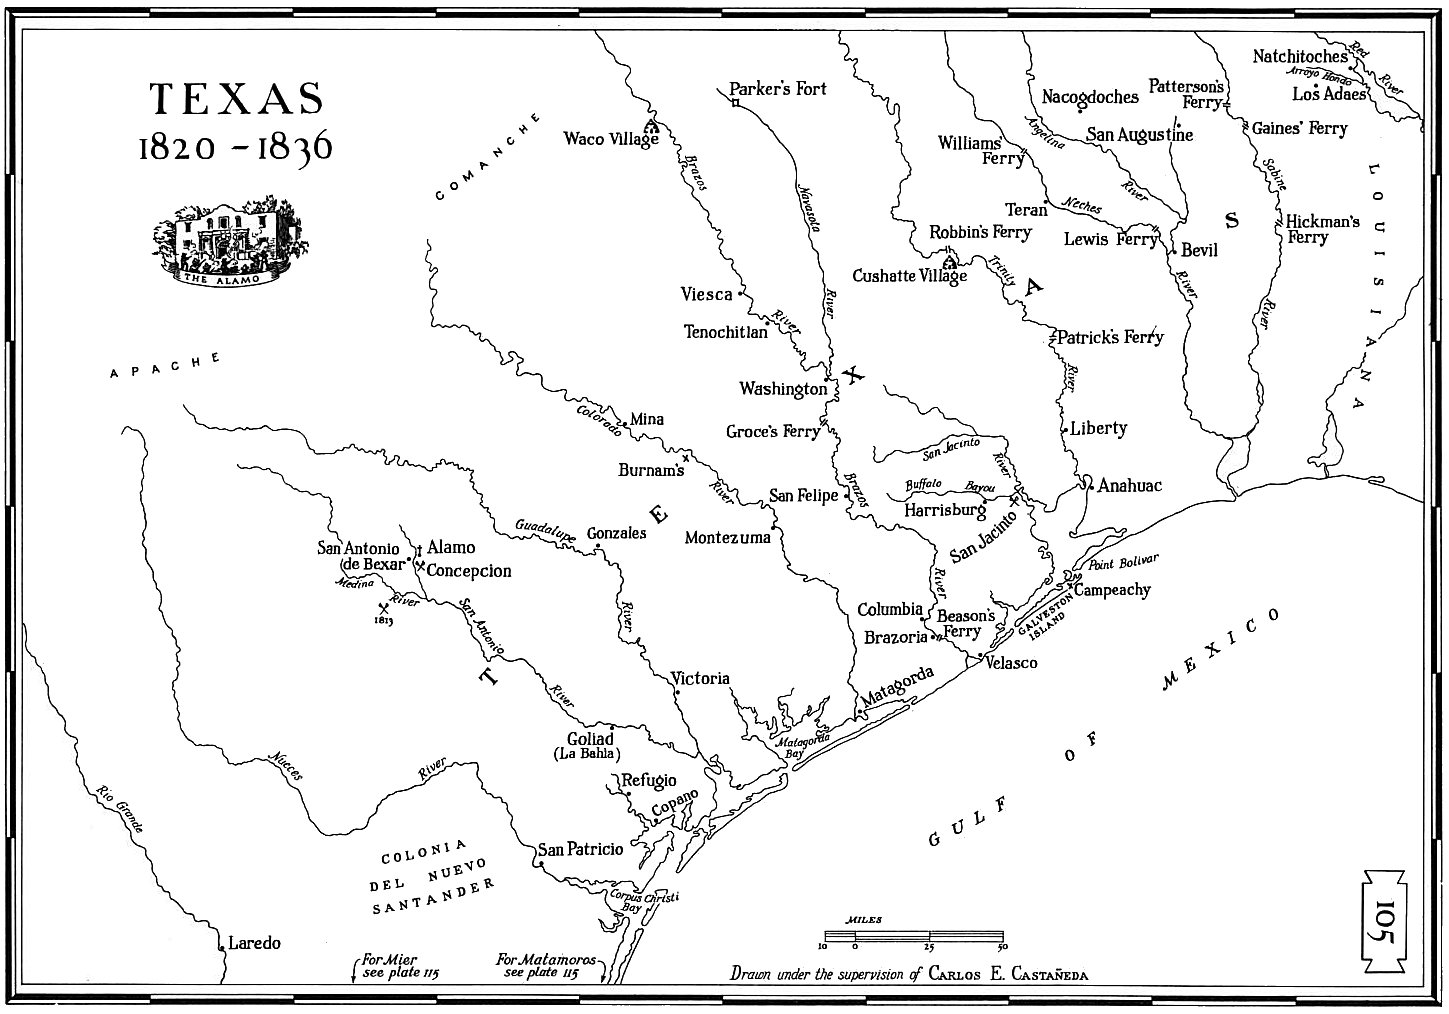 Statewide resources, Texas: Maps and Gazetteers